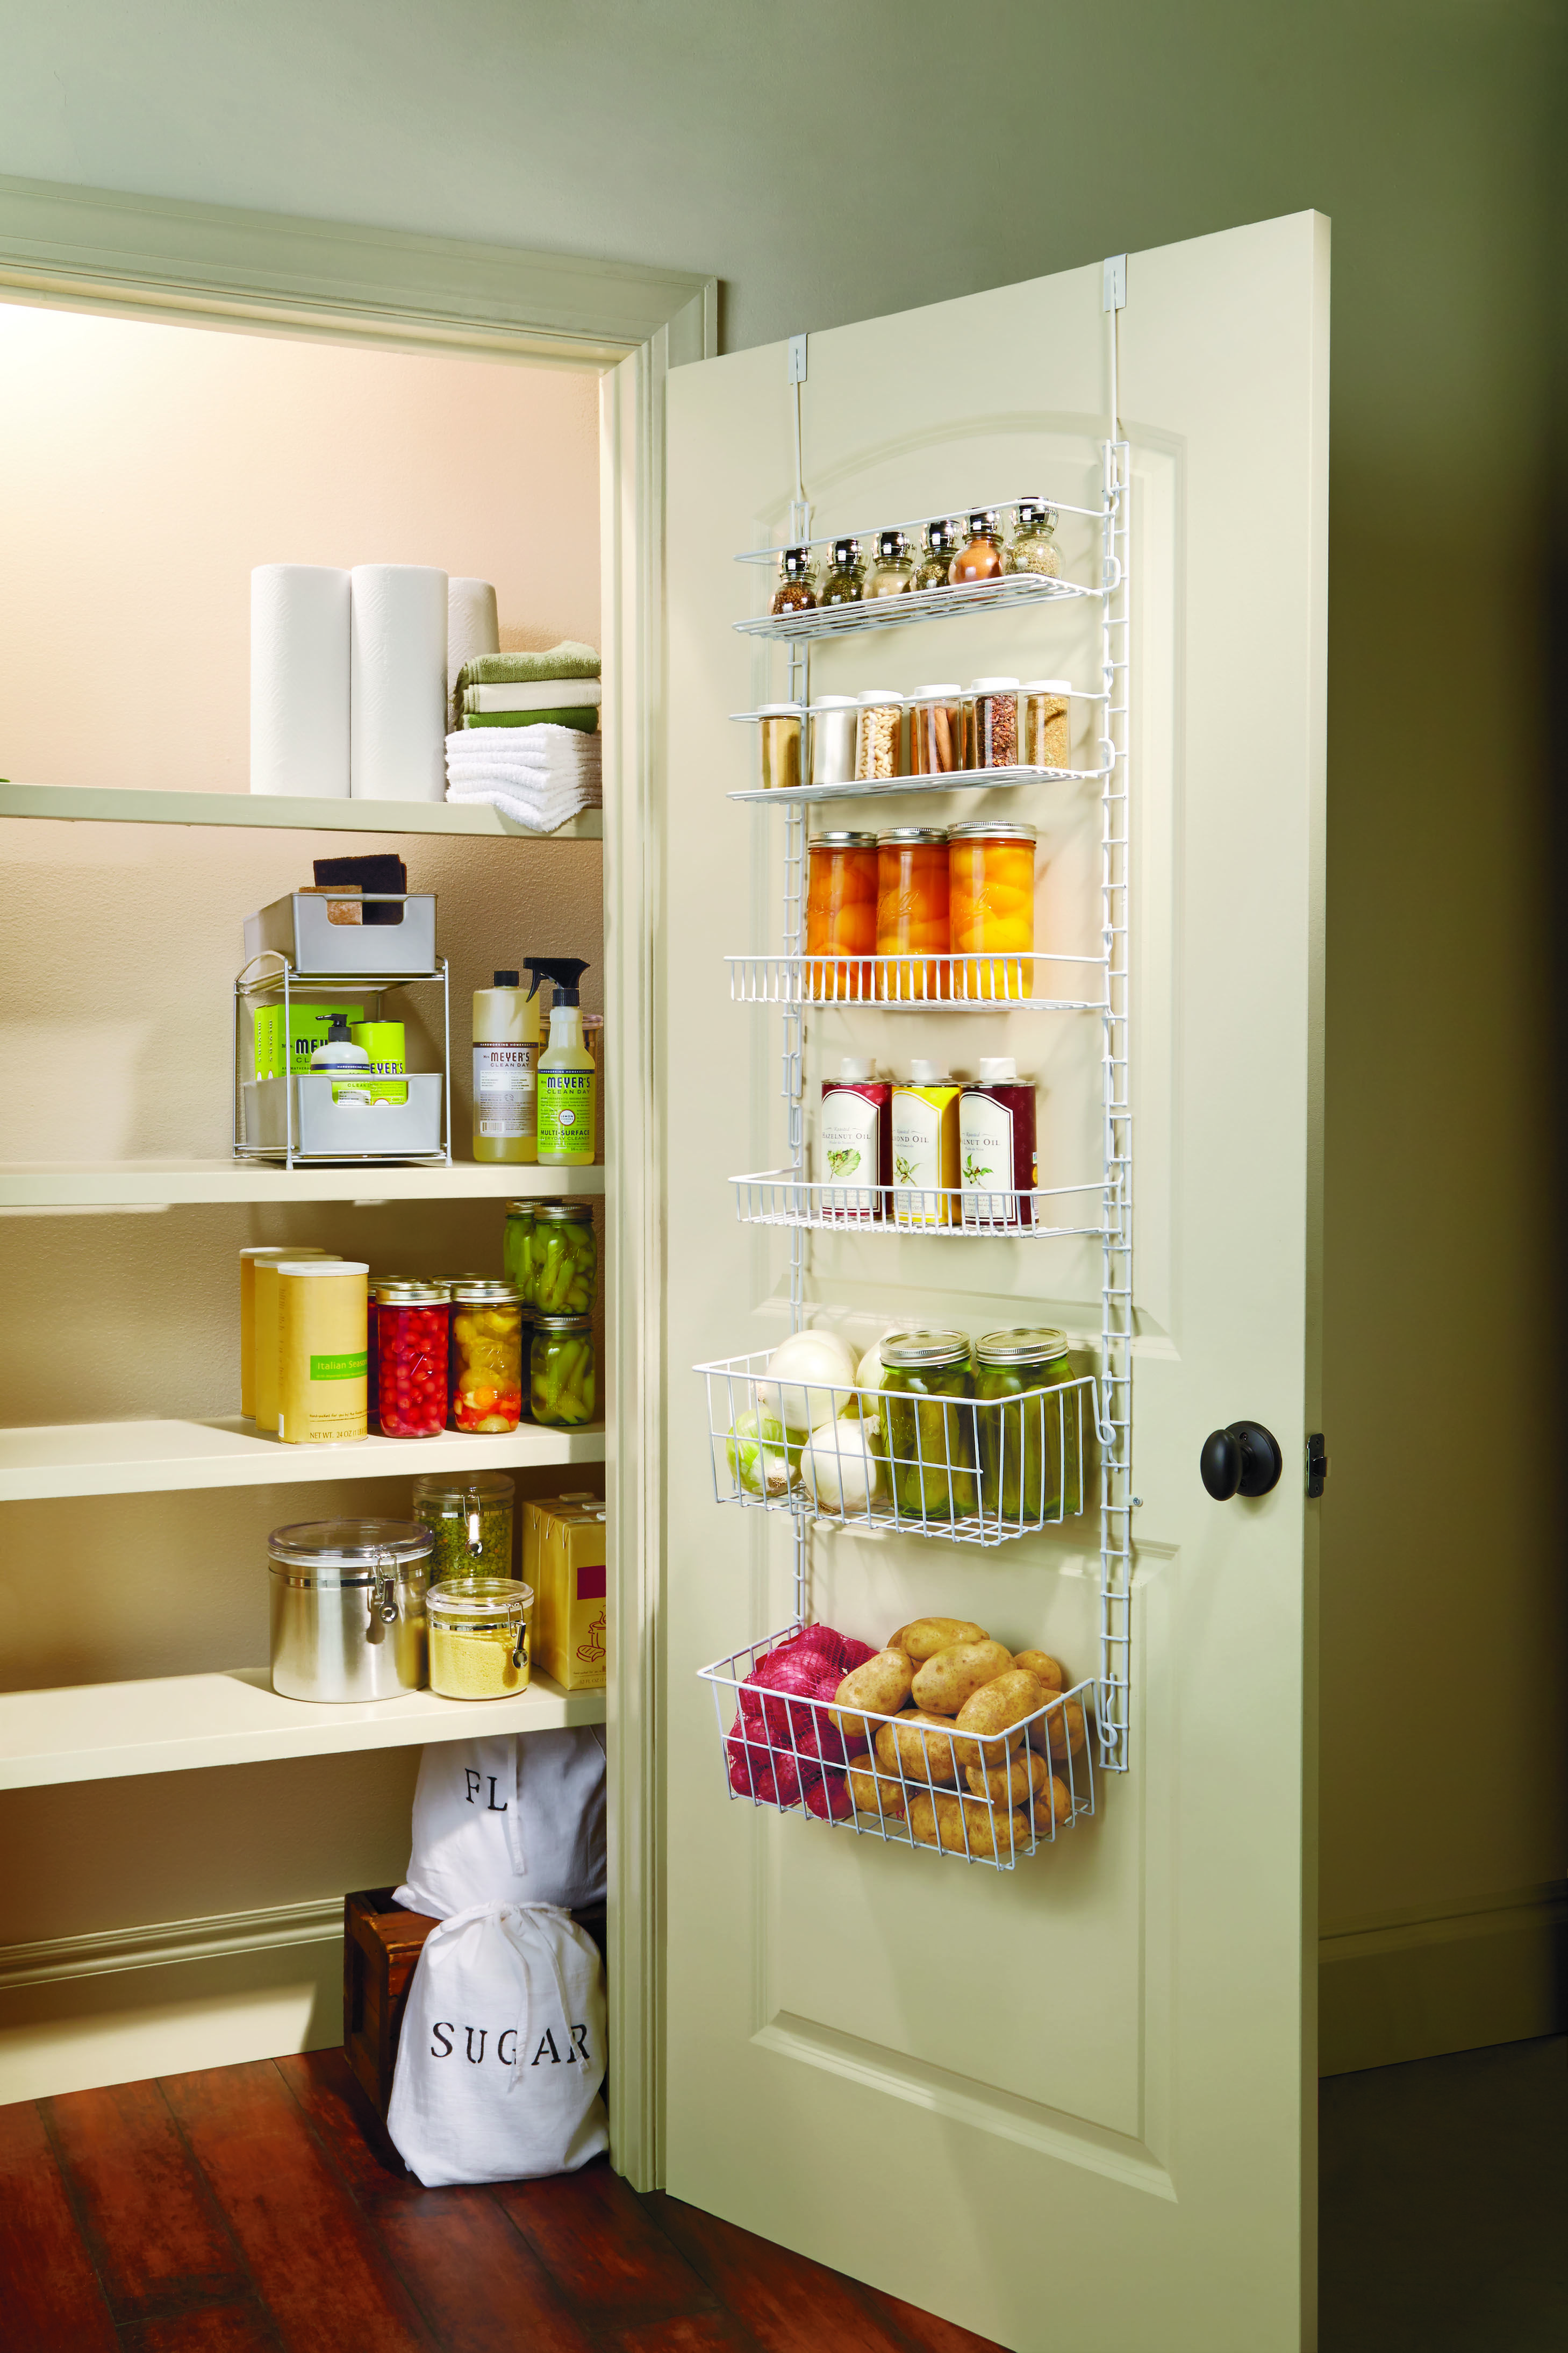 Over the door pantry racks easily mount over a door or on a wall